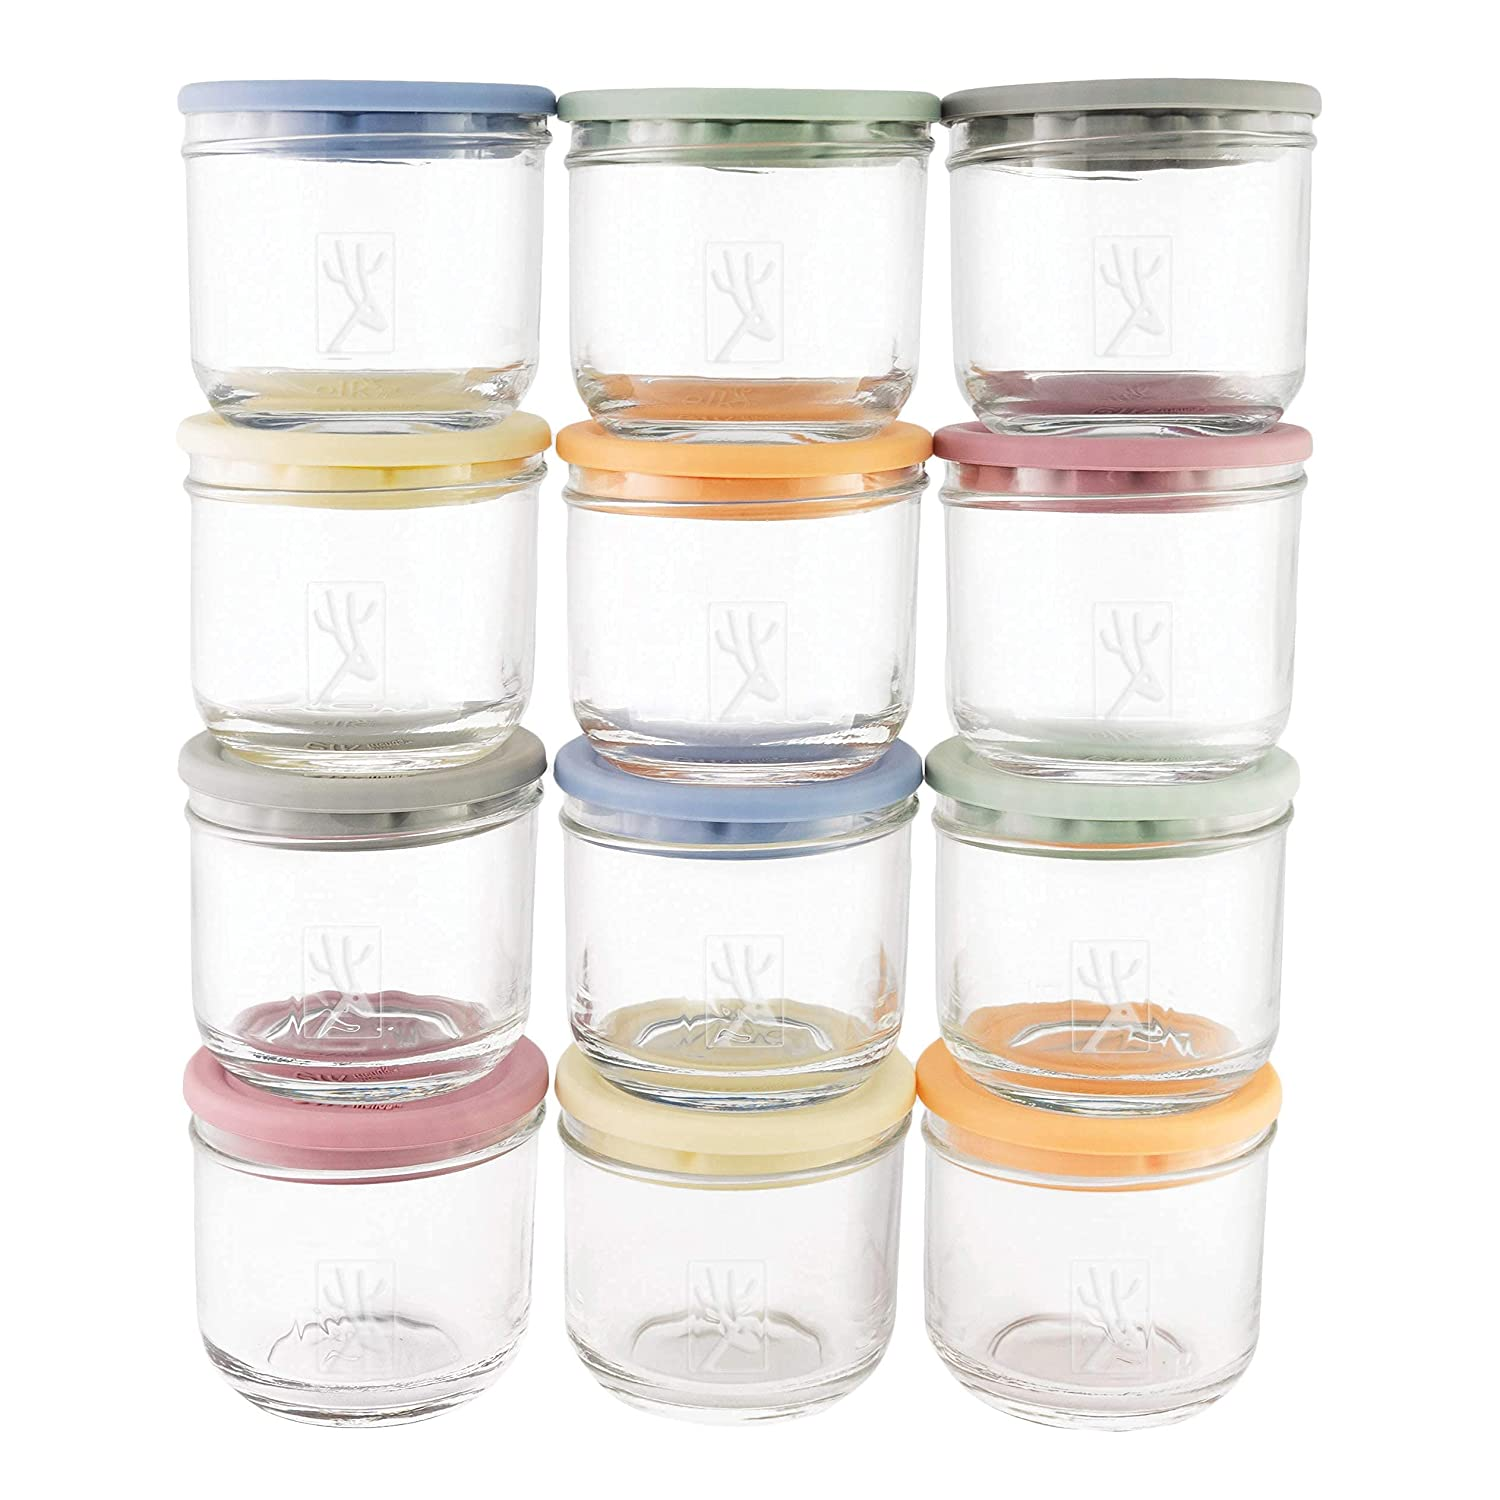 Elk and Friends 5oz Borosilicate Glass Baby Food Storage Jars with Silicone Lid | Available in 12 or 6 Set | Strong Glass | Storage Containers | Microwave, Oven & Dishwasher Safe | Infant and Babies